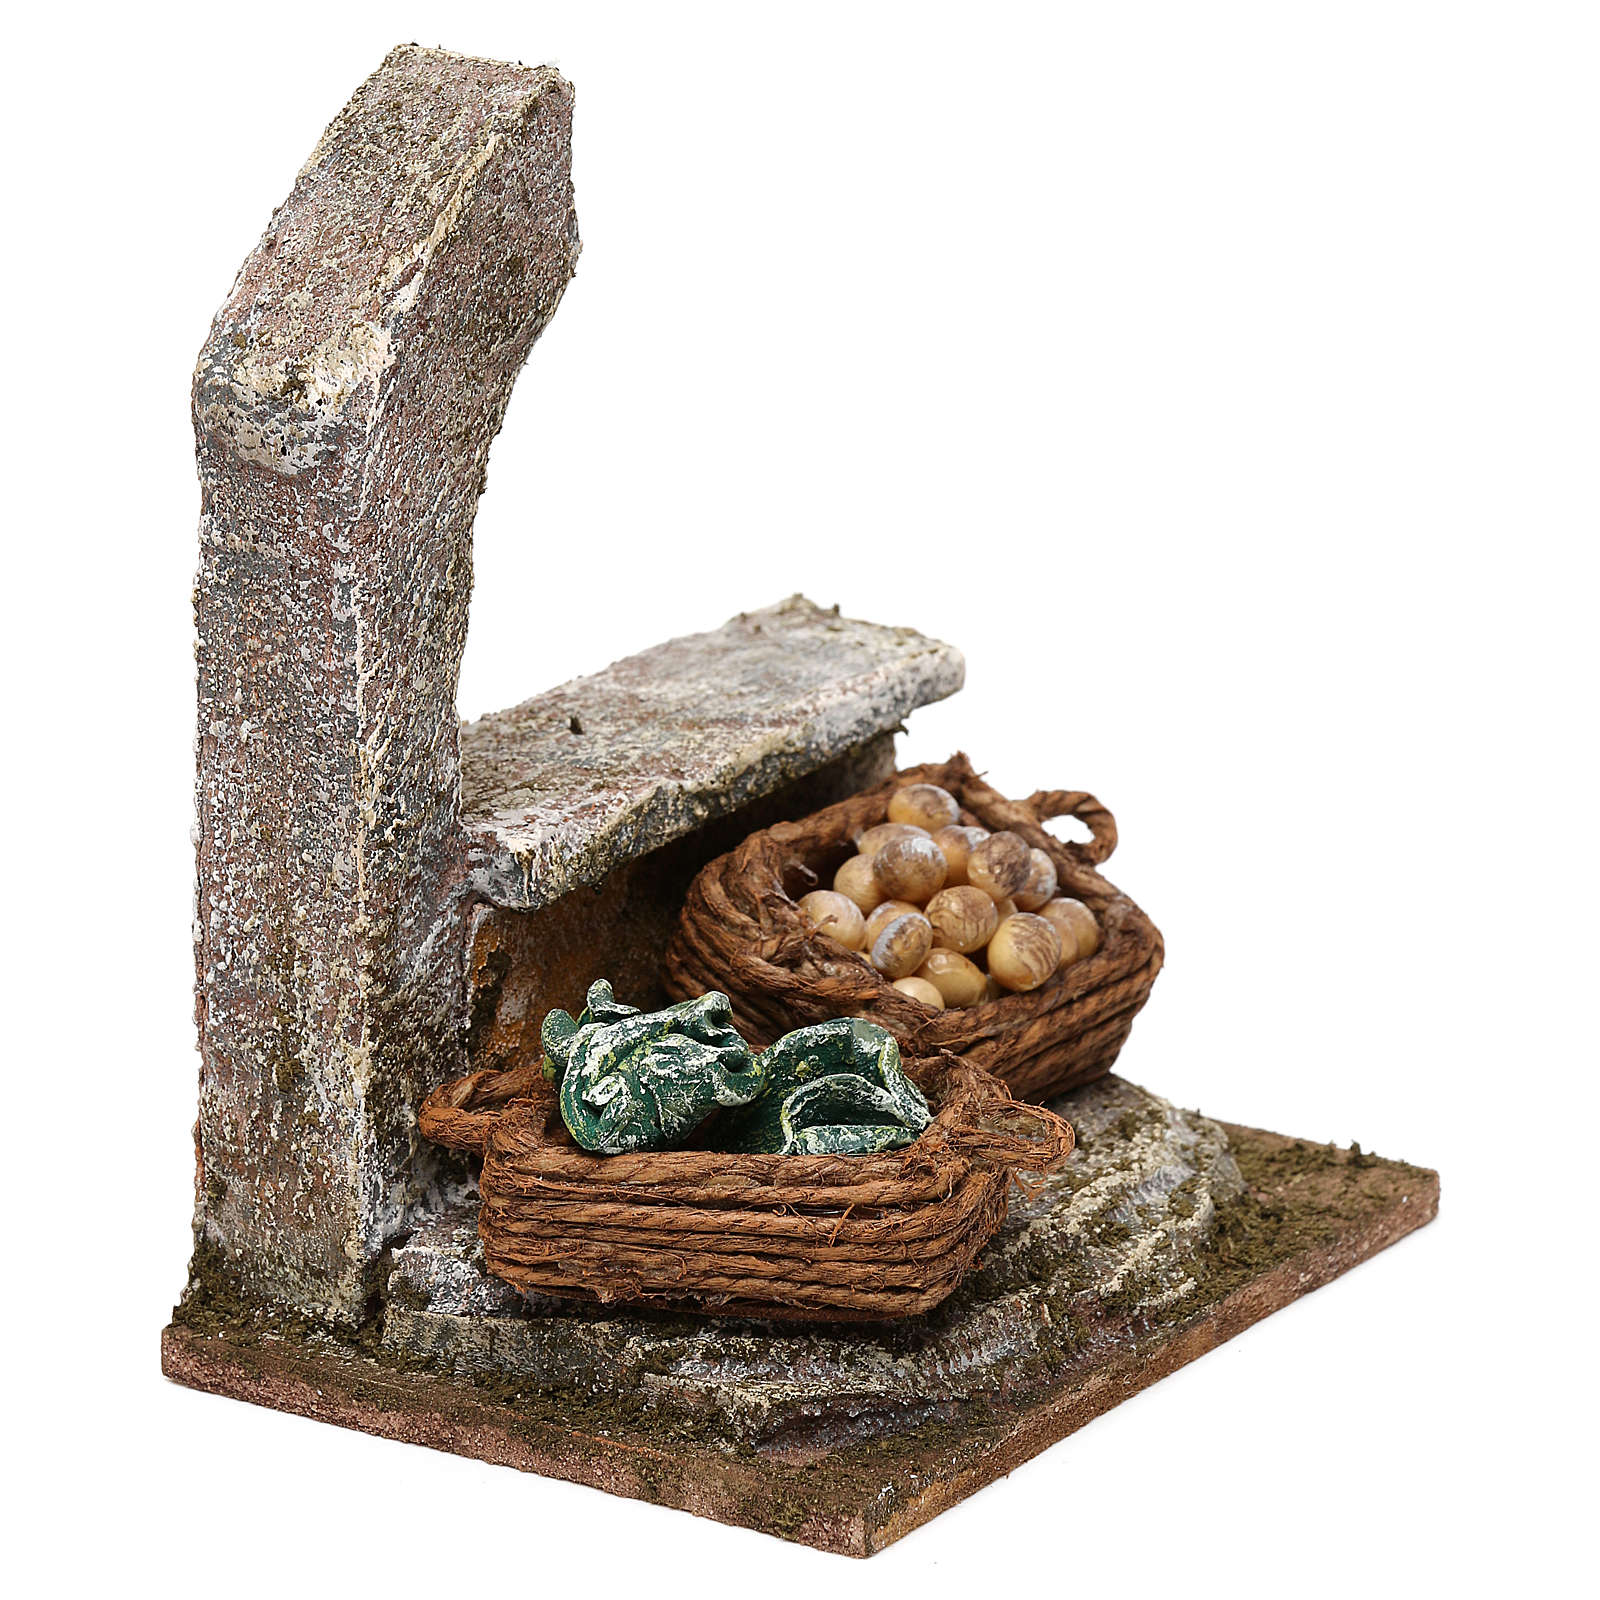 Arcade with vegetable baskets for Nativity scenes 10 cm 10x10x10 cm 4